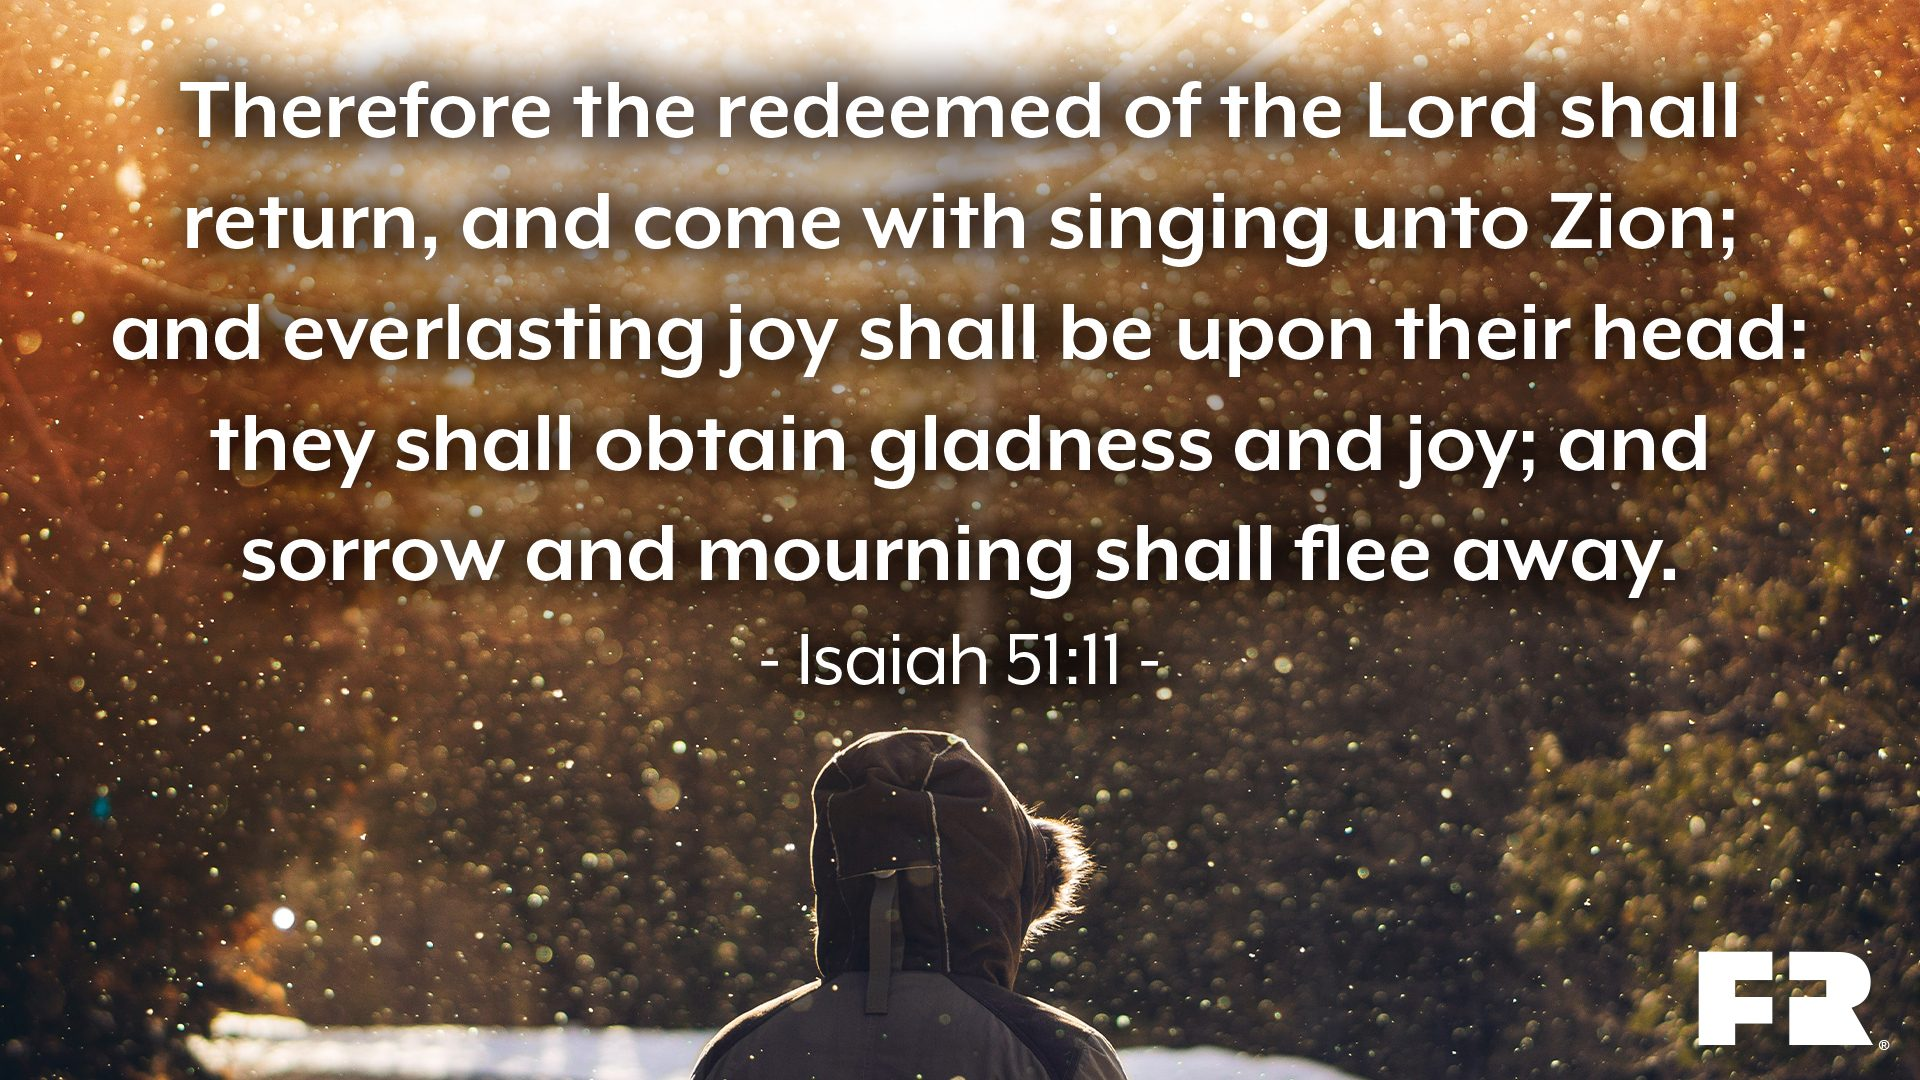 """Therefore the redeemed of the LORD shall return, and come with singing unto Zion; and everlasting joy shall be upon their head: they shall obtain gladness and joy; and sorrow and mourning shall flee away."""